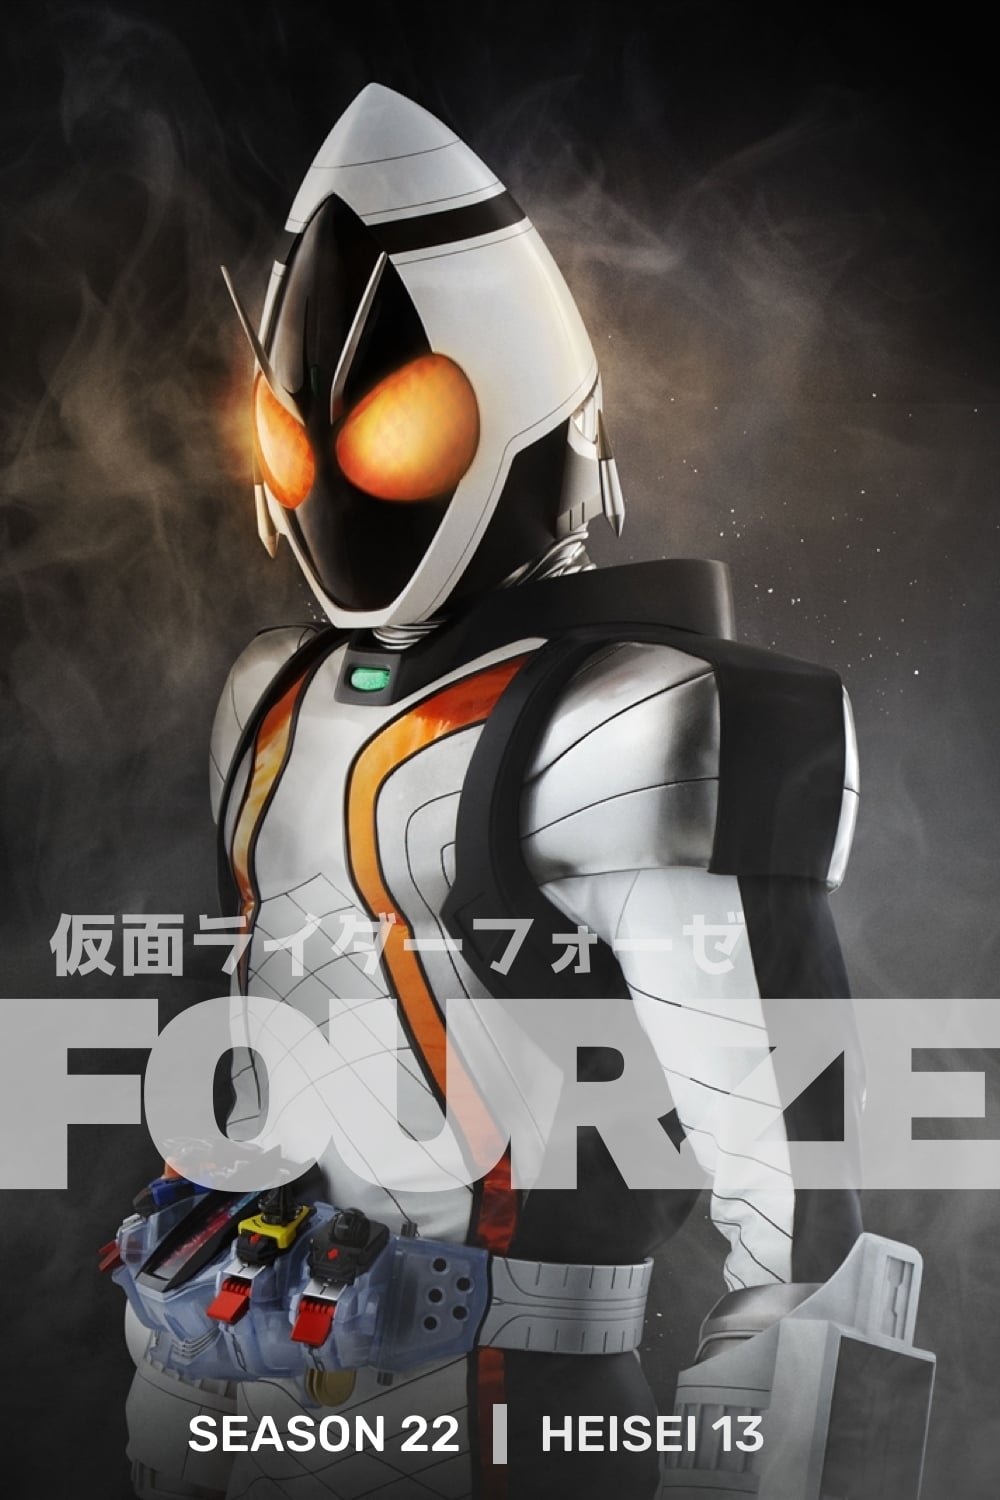 Kamen Rider - Season 21 Episode 30 : King, Panda, Memory of Flame Season 22